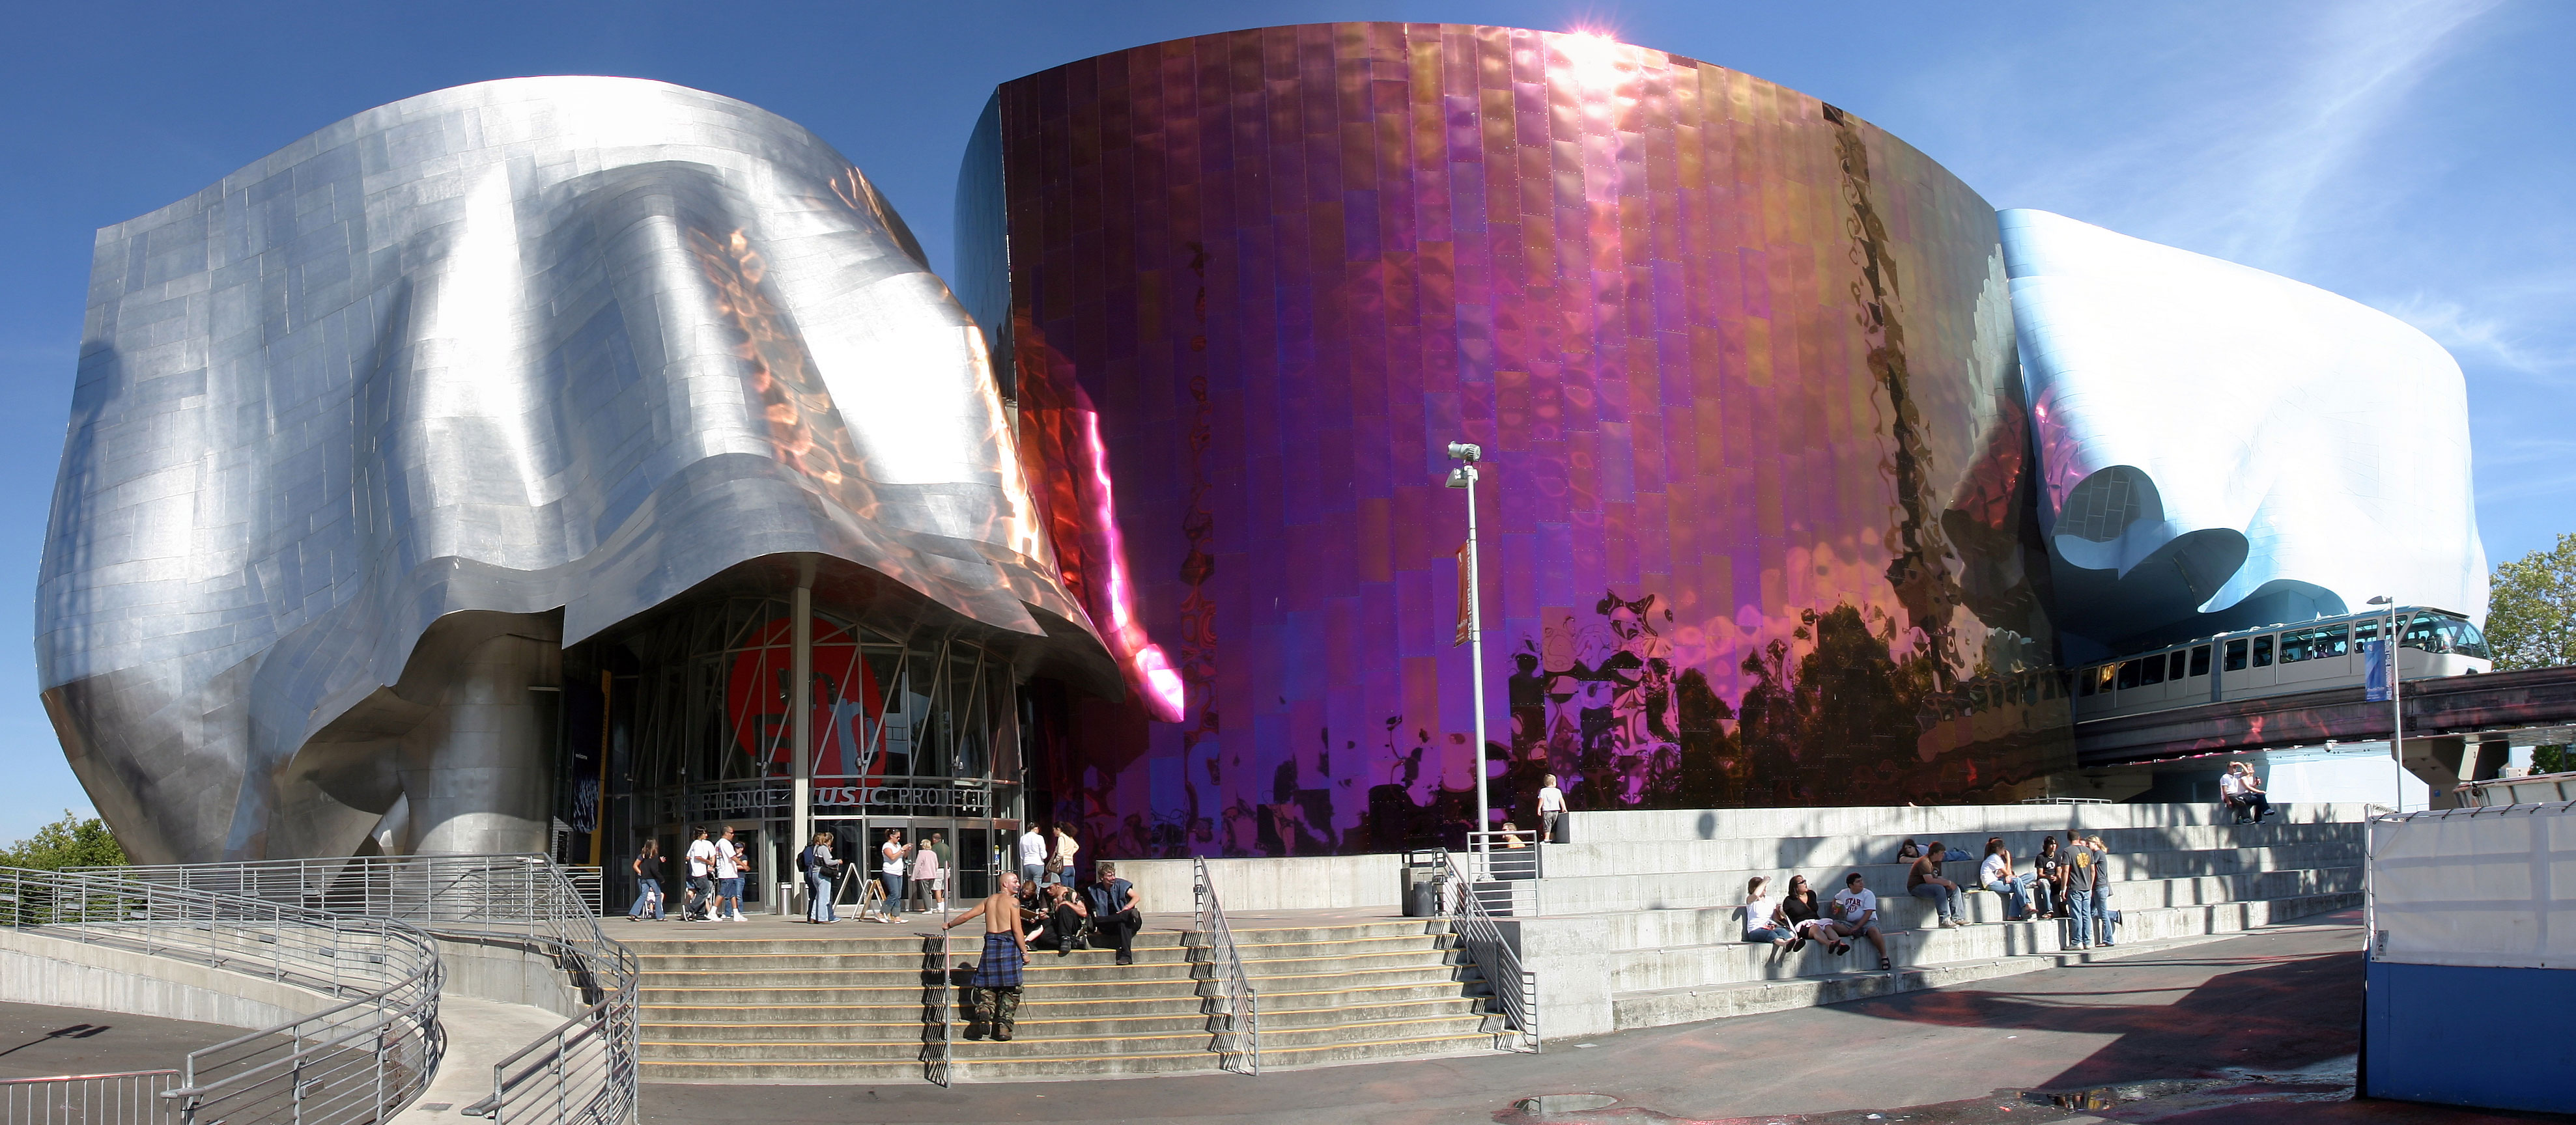 AD100: Top 10 Best Interior Design by Gehry frank gehry AD100: Top 10  Best Interior Design by Frank Gehry 5